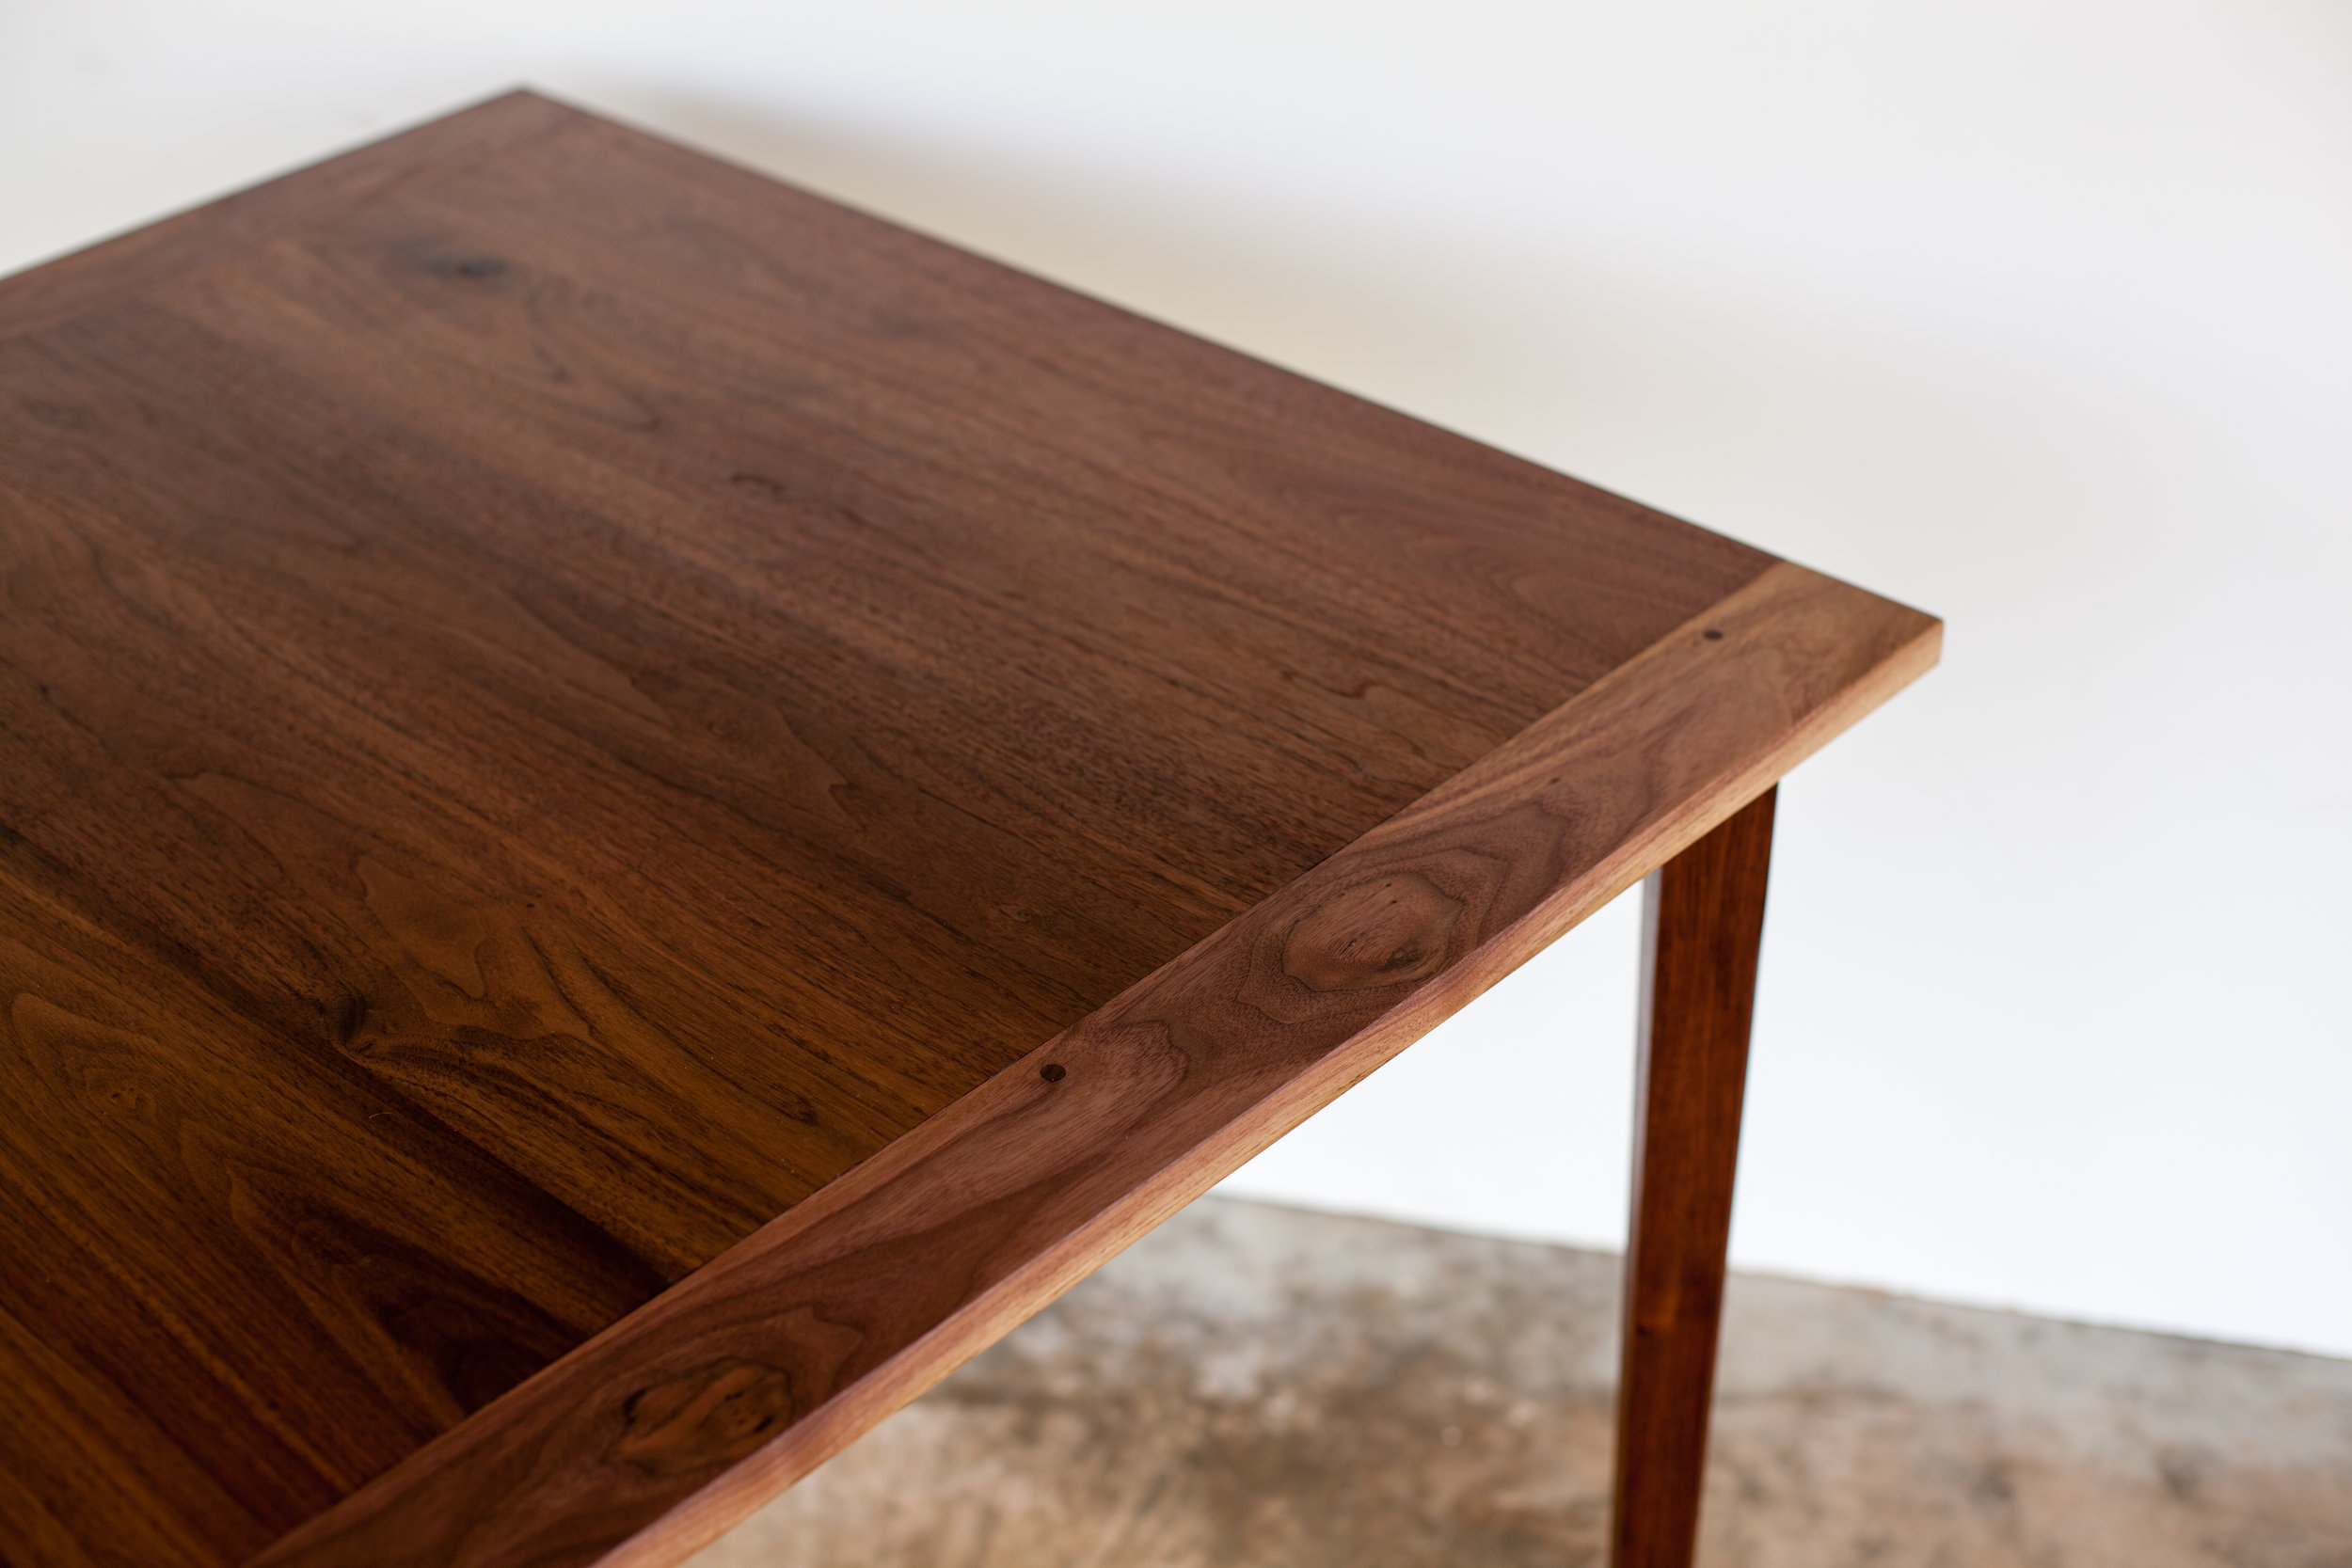 gusdarnellwoodworking_table-7.jpg